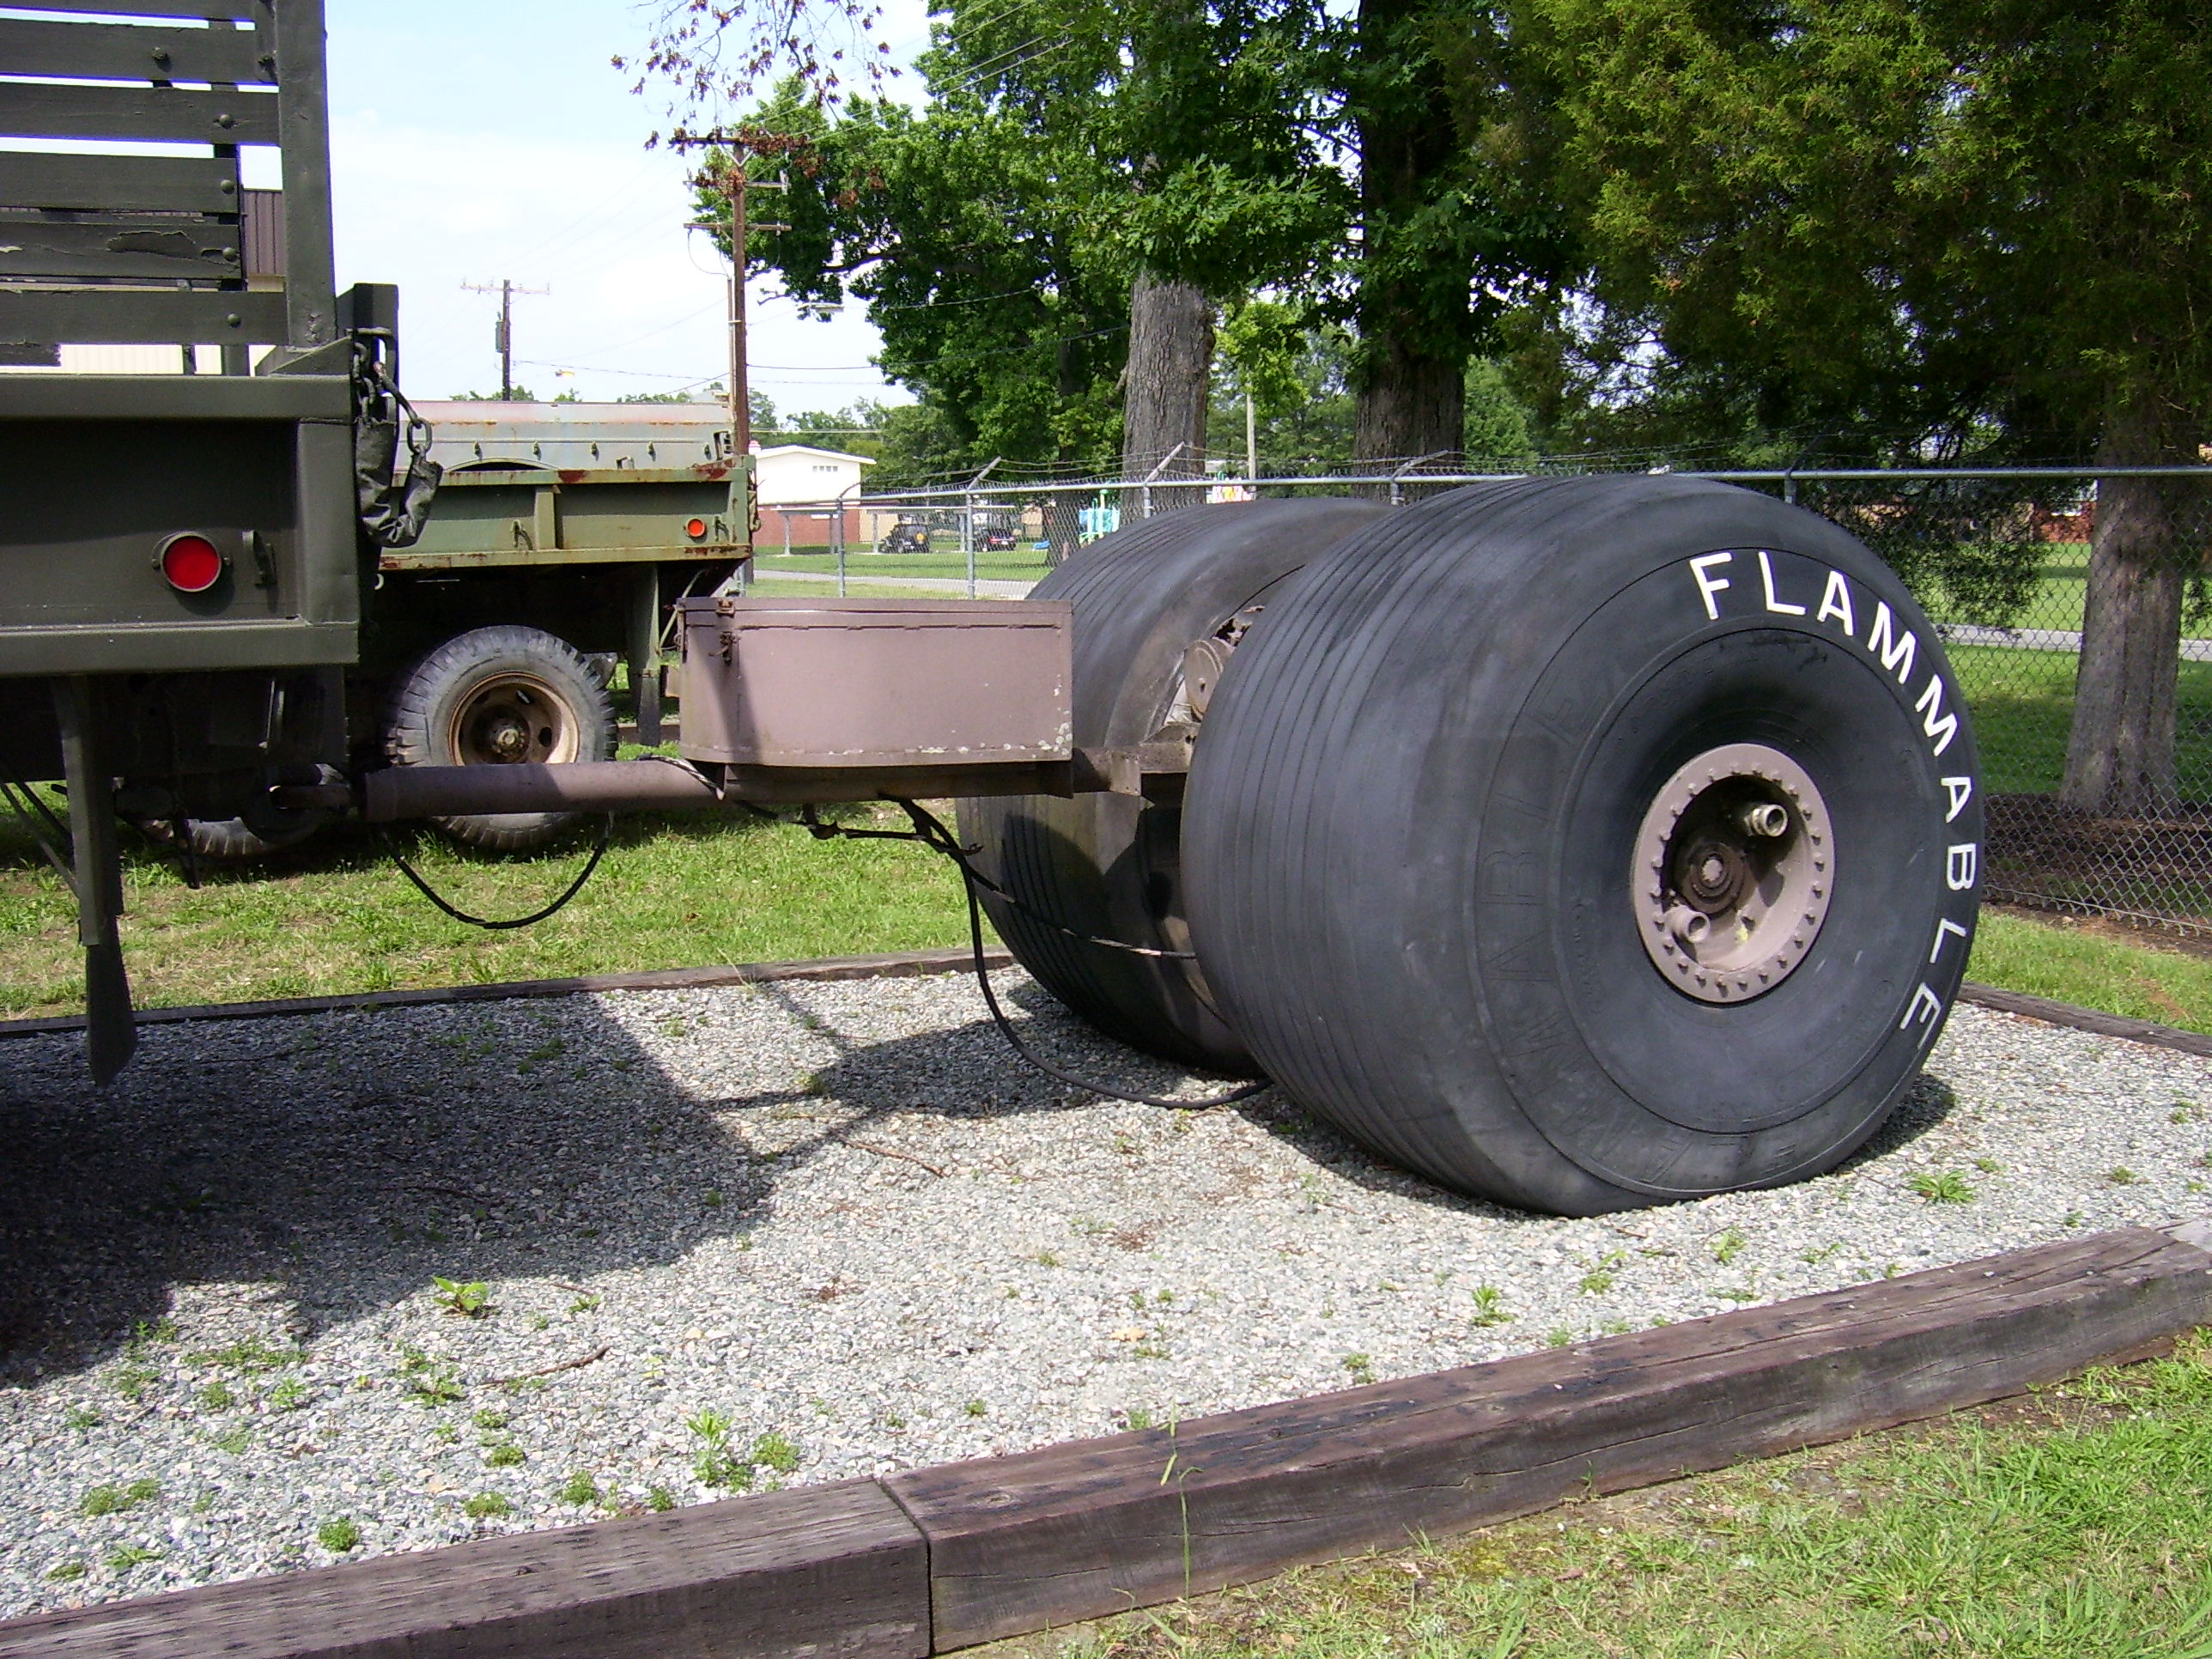 1000 Images About Trucks I Never Knew On Pinterest